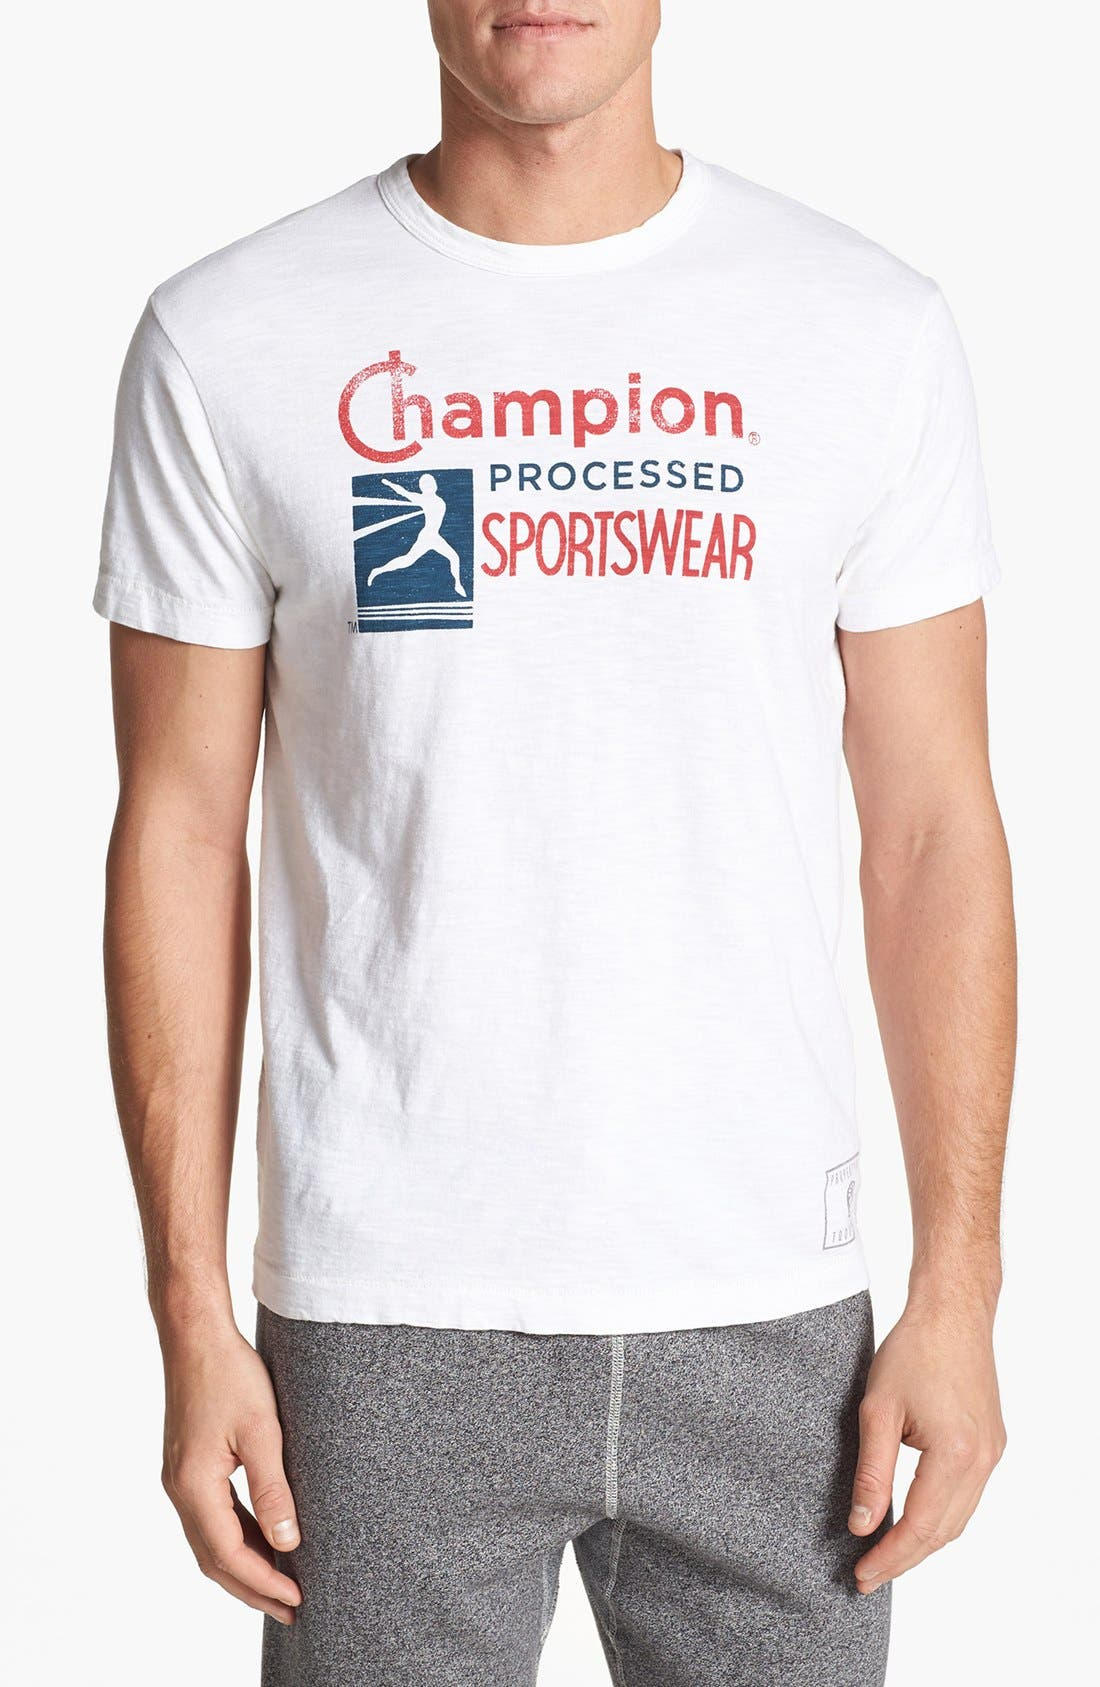 TODD SNYDER + CHAMPION, 'Process' T-Shirt, Main thumbnail 1, color, 100